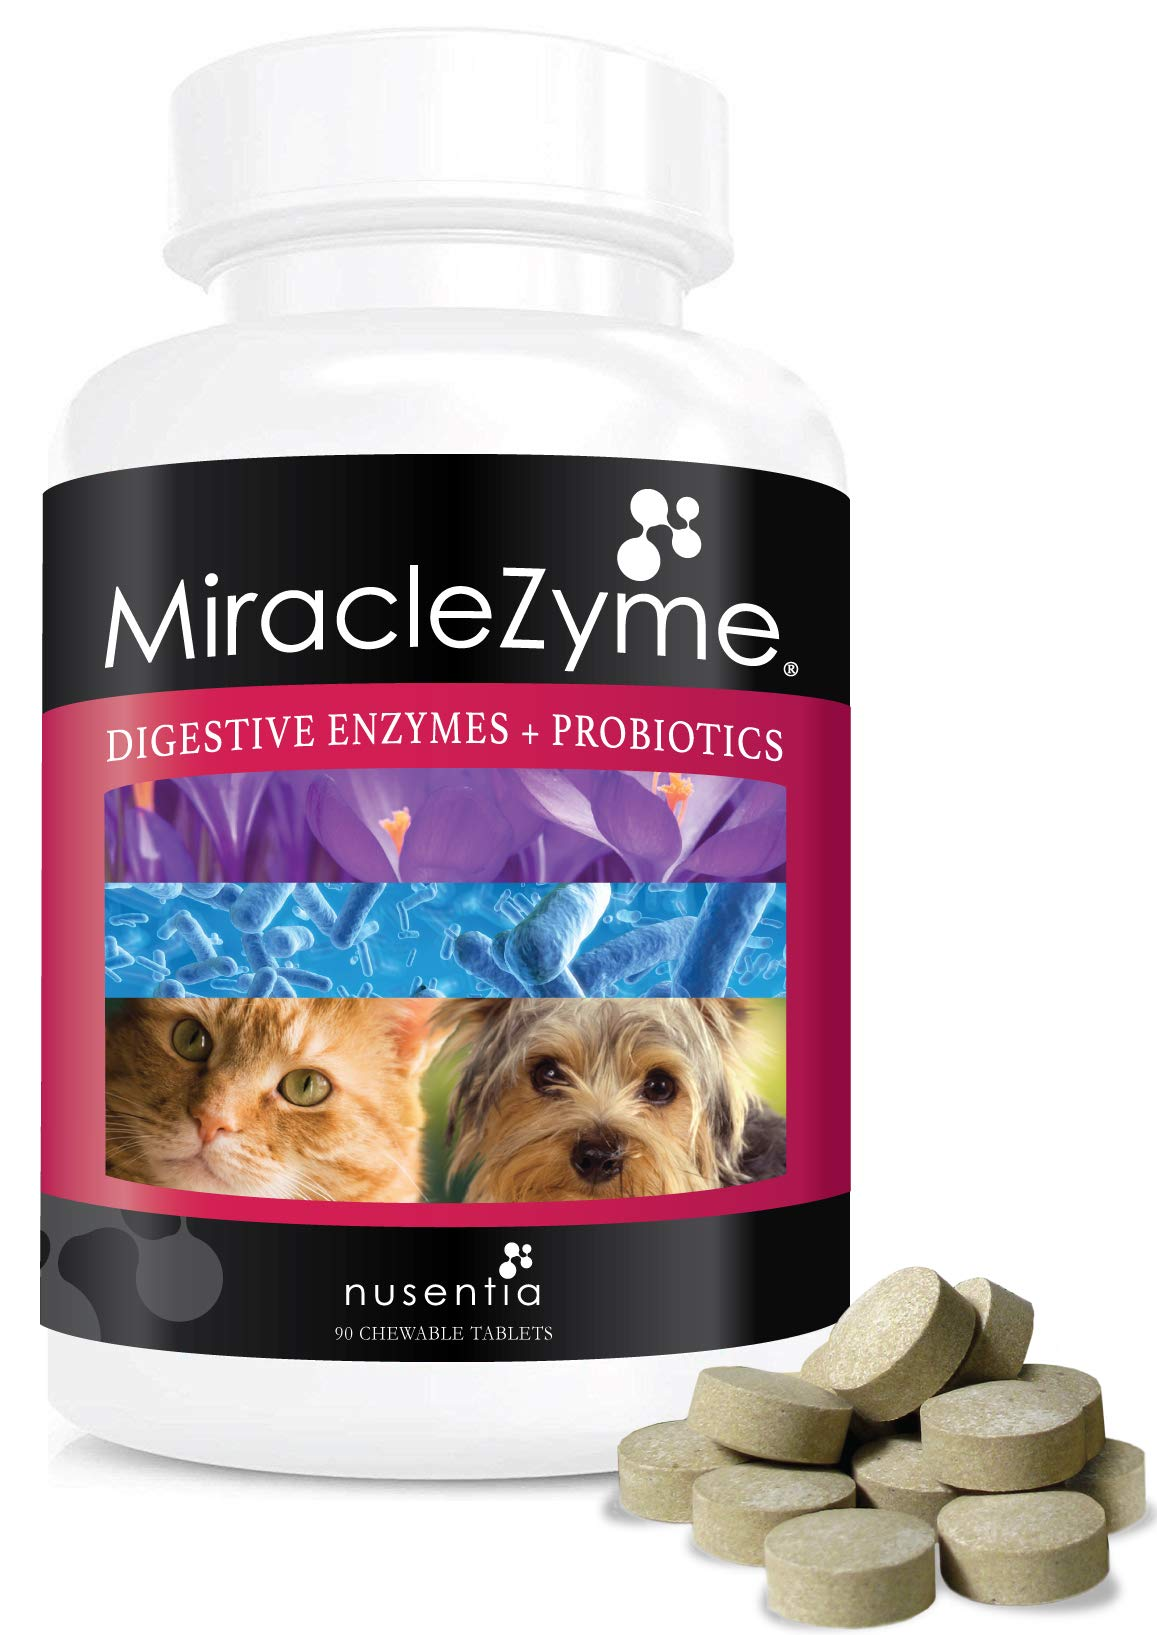 Probiotics for Dogs with Enzymes -Chewables (90ct) -Cats and Dog Tablets-Complete Digestive Remedy for Pets, Controls Gas, Loose Stool, Diarrhea, and More. Great Taste Dogs and Cats Love. Made in USA. by NUSENTIA